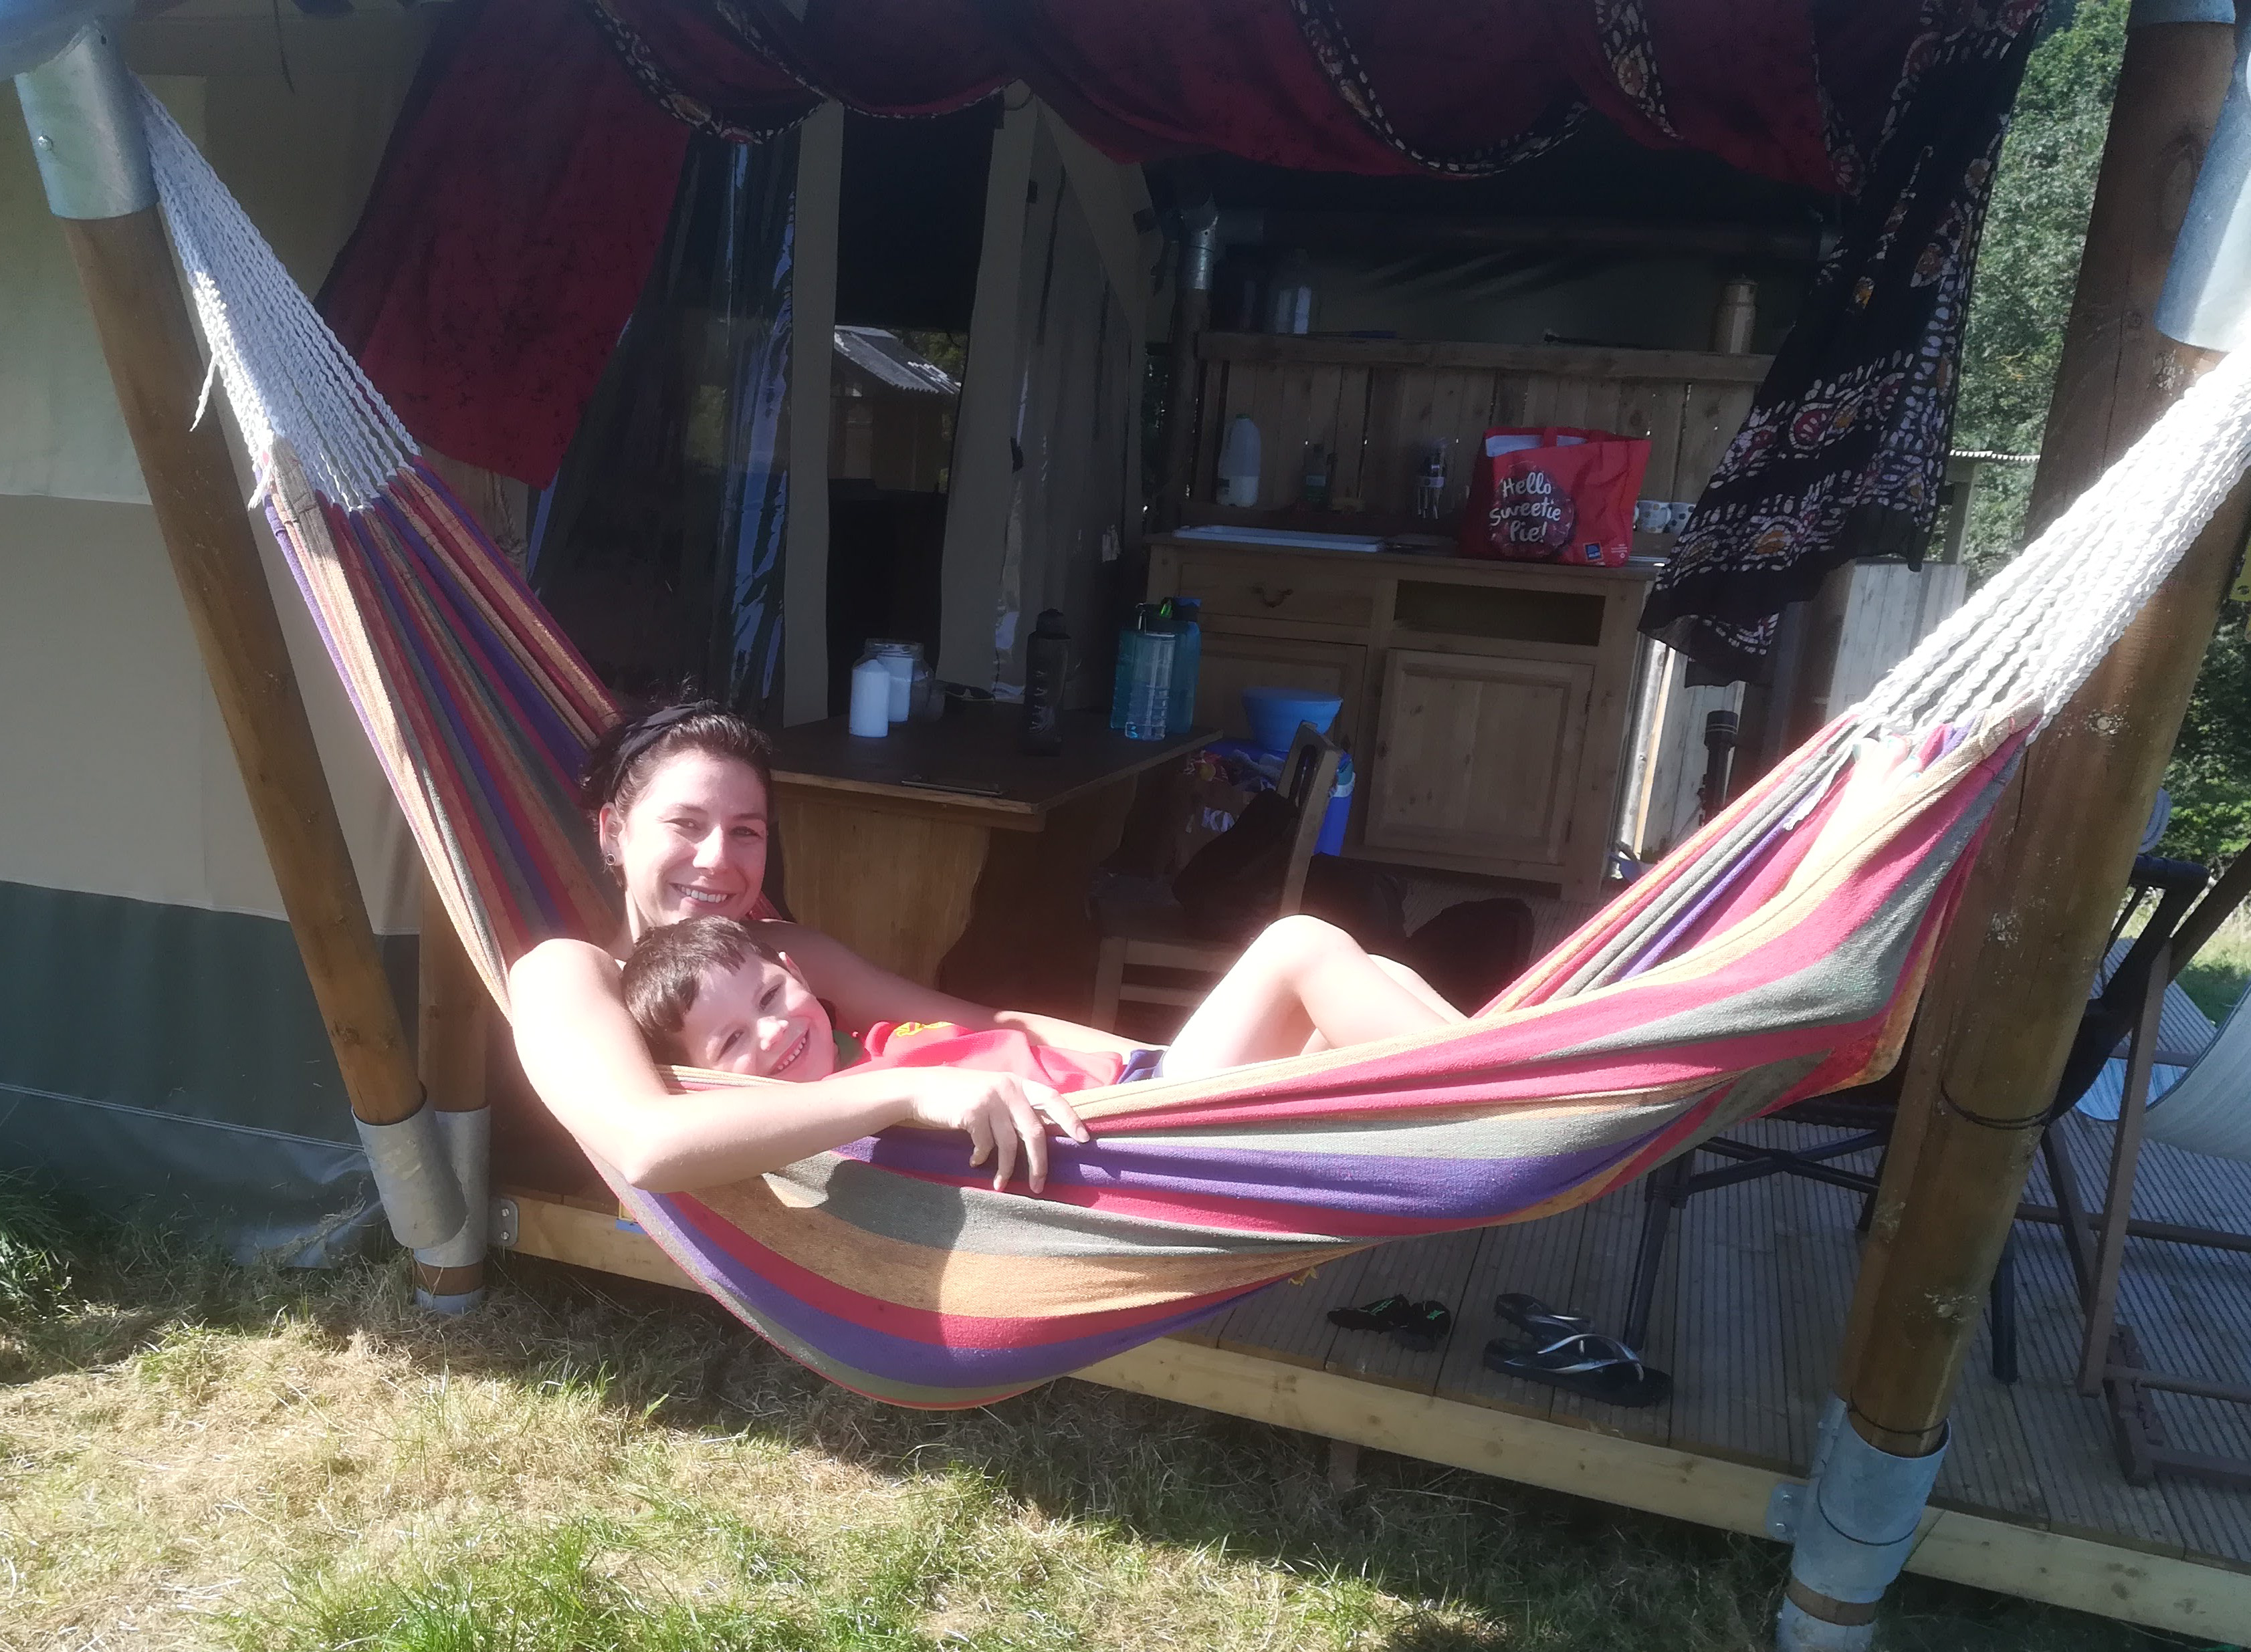 Mum and daughter relaxing in a hammock